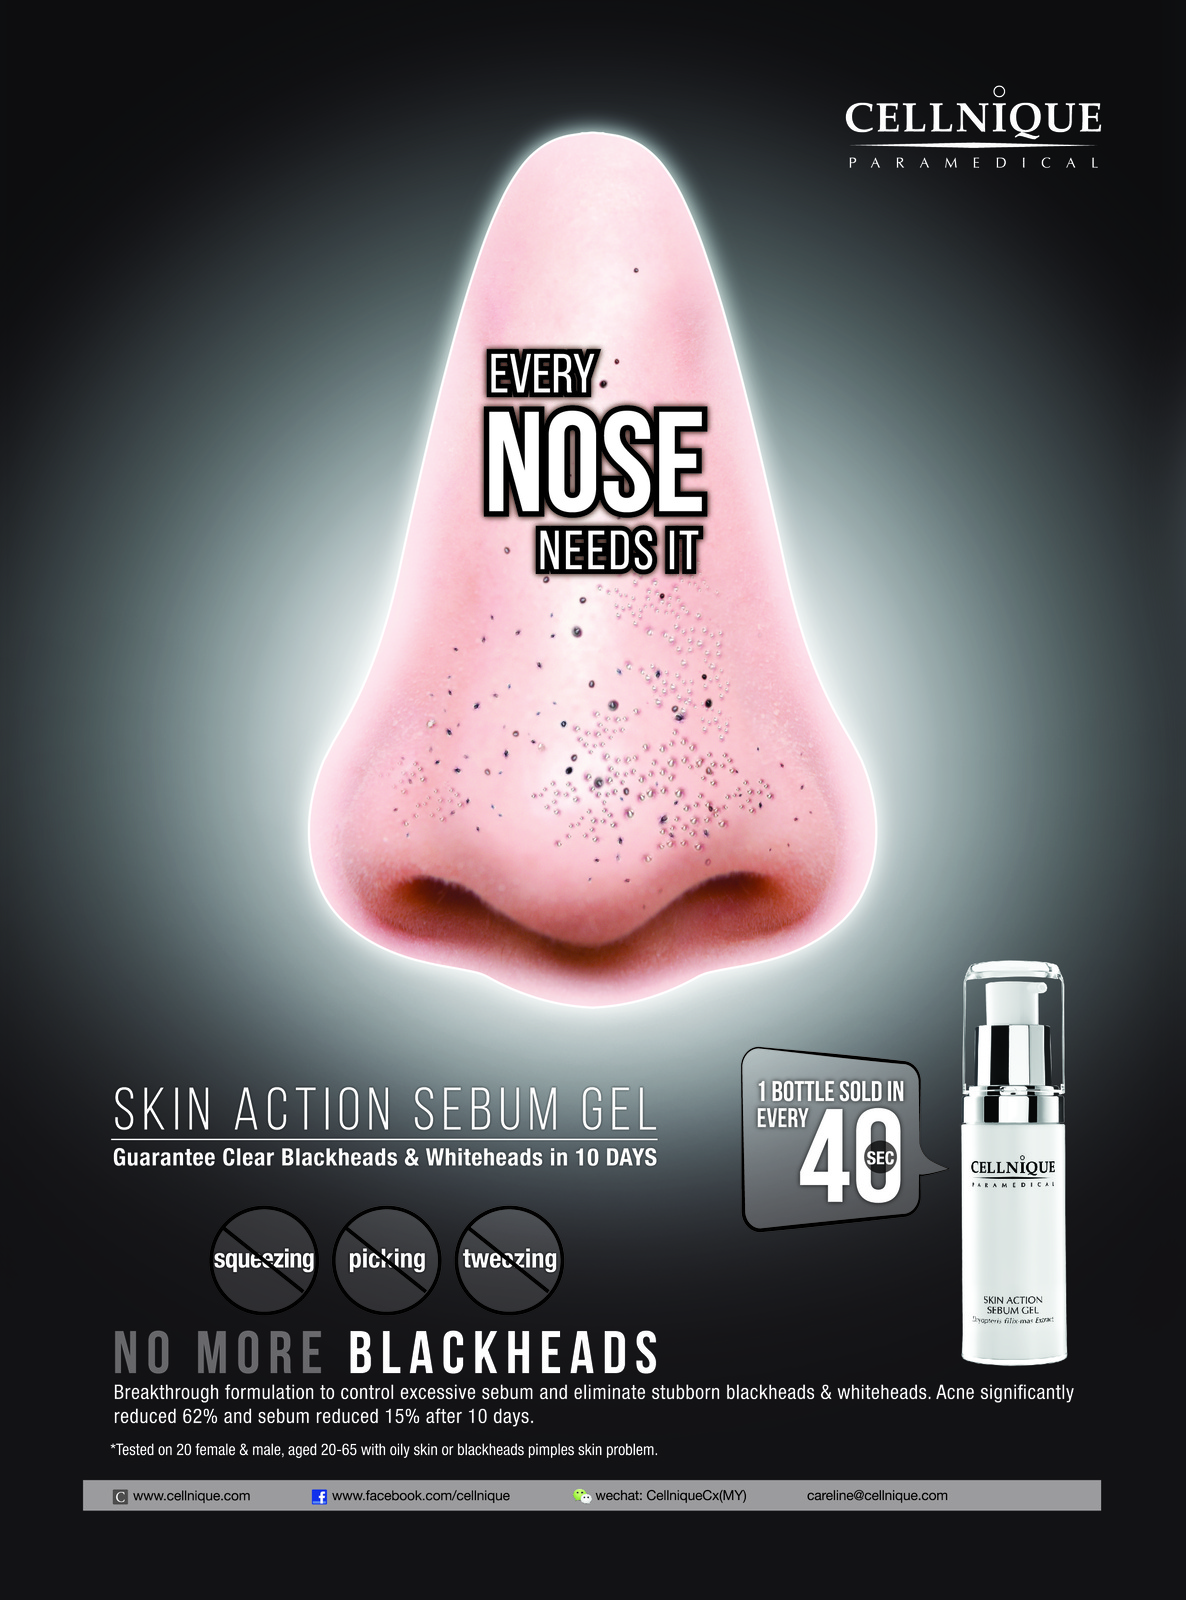 Cellnique Skin Action Sebum Gel 15ML - Clear Blackheads and Whiteheads